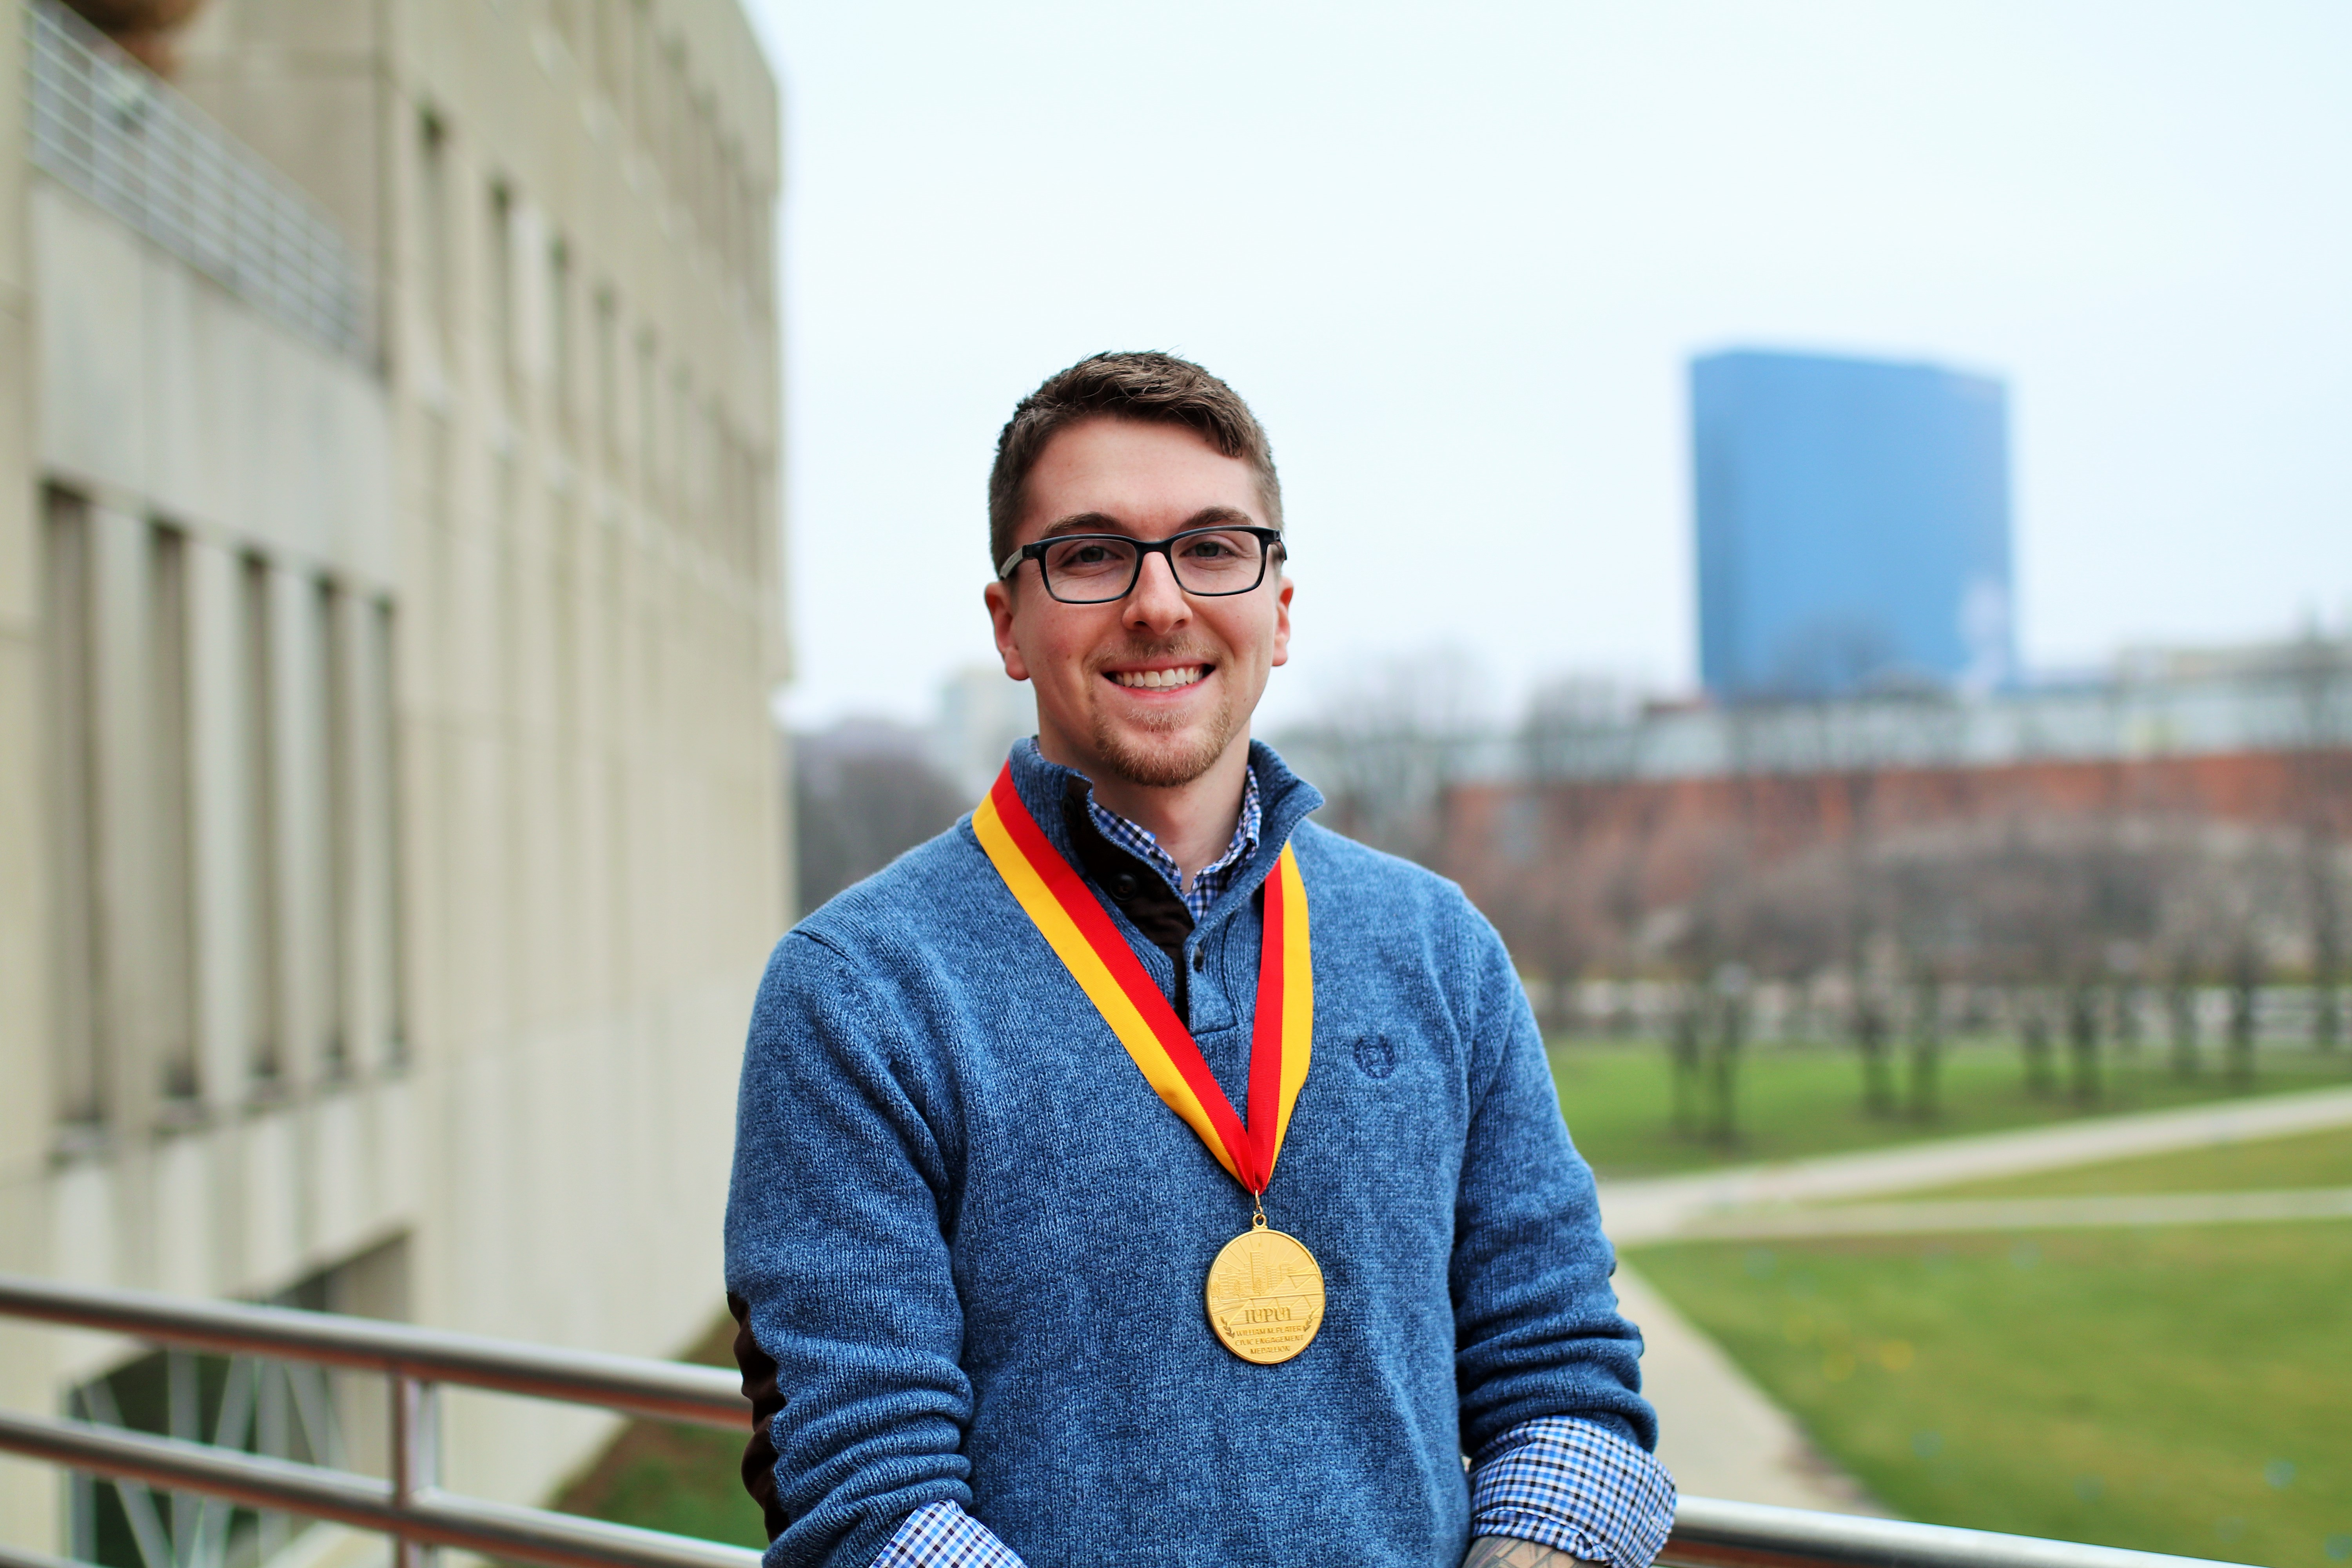 SPEA's Spencer Lawson earned the Plater Medallion for his research and impact on the community.